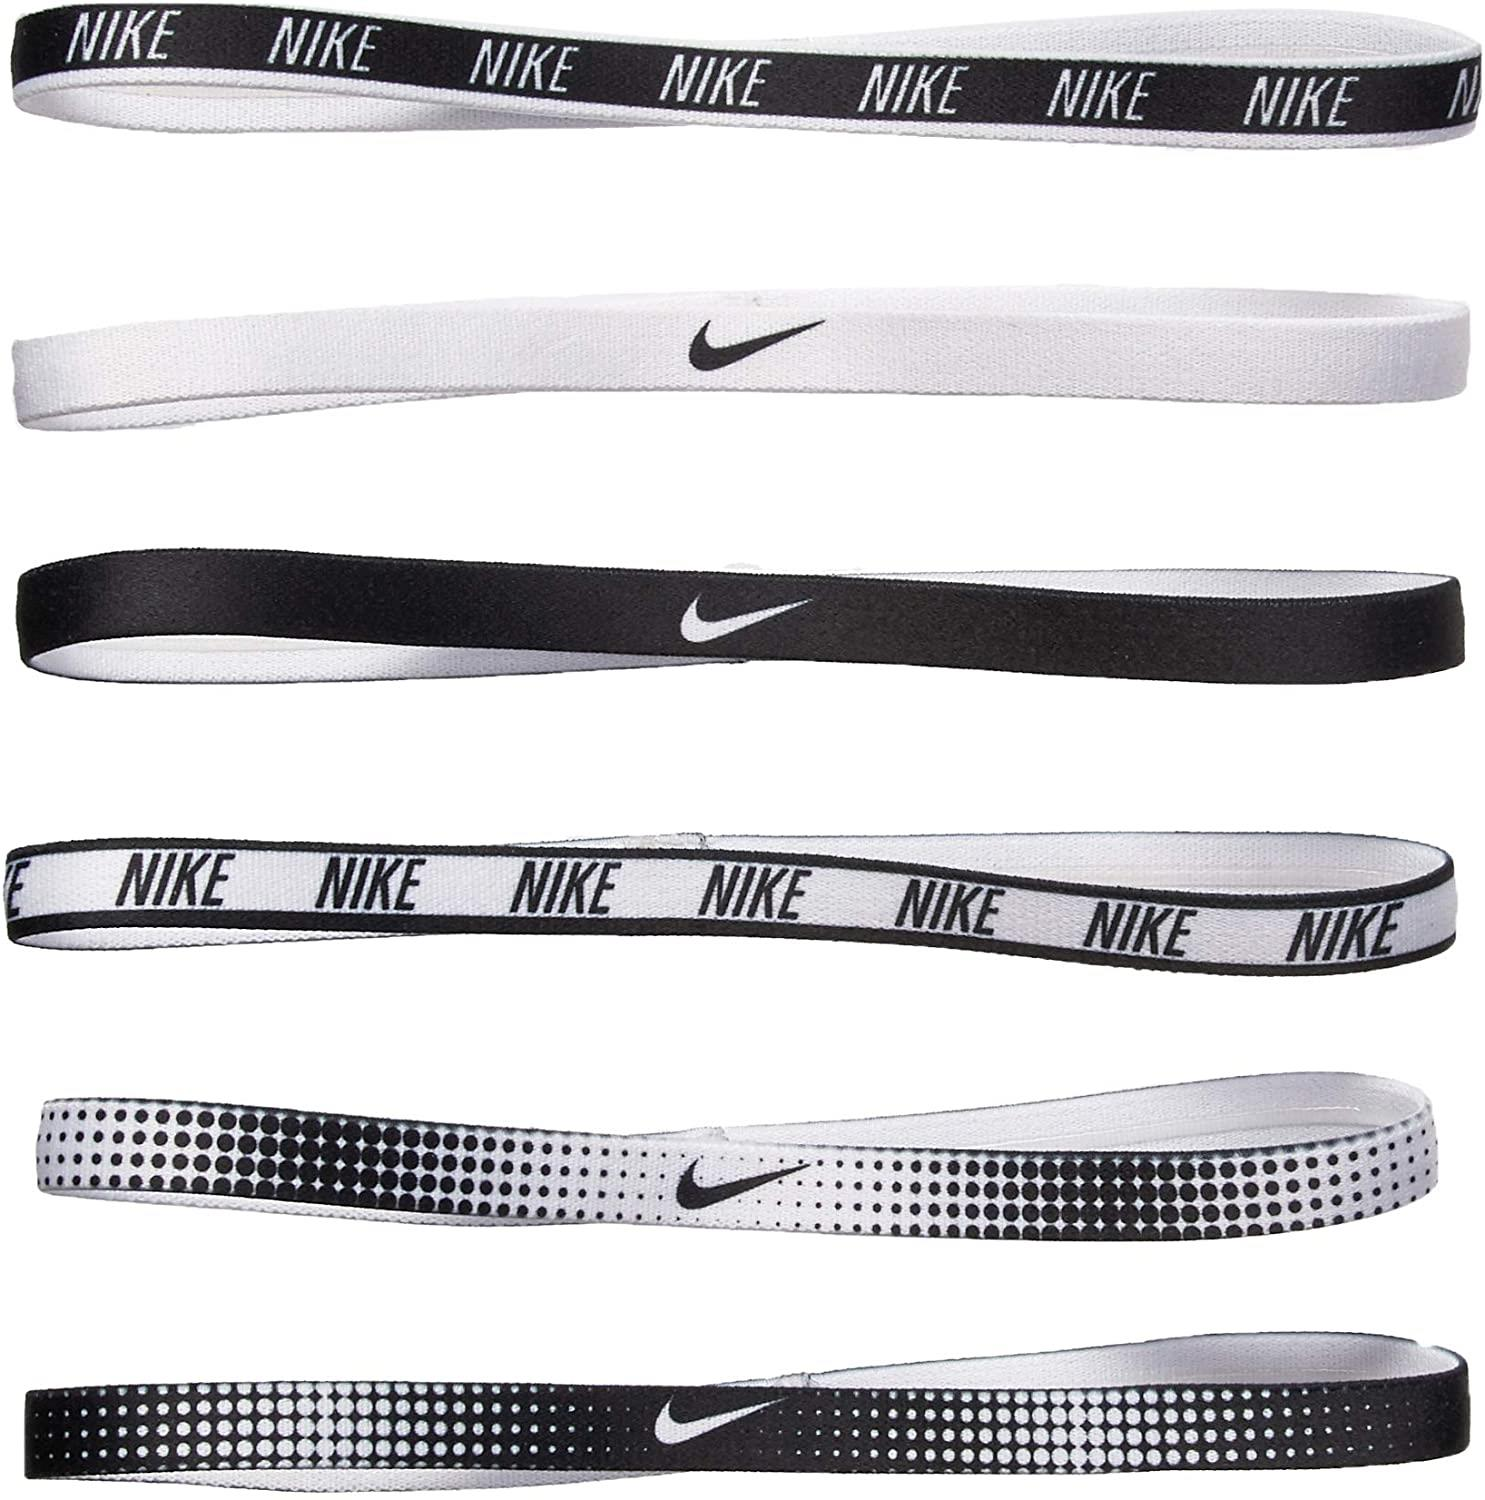 Nike N.JN.65.964.OS PRINTED HEADBANDS ASSORTED 6PK WHITE SAÇ İPİ BANDI